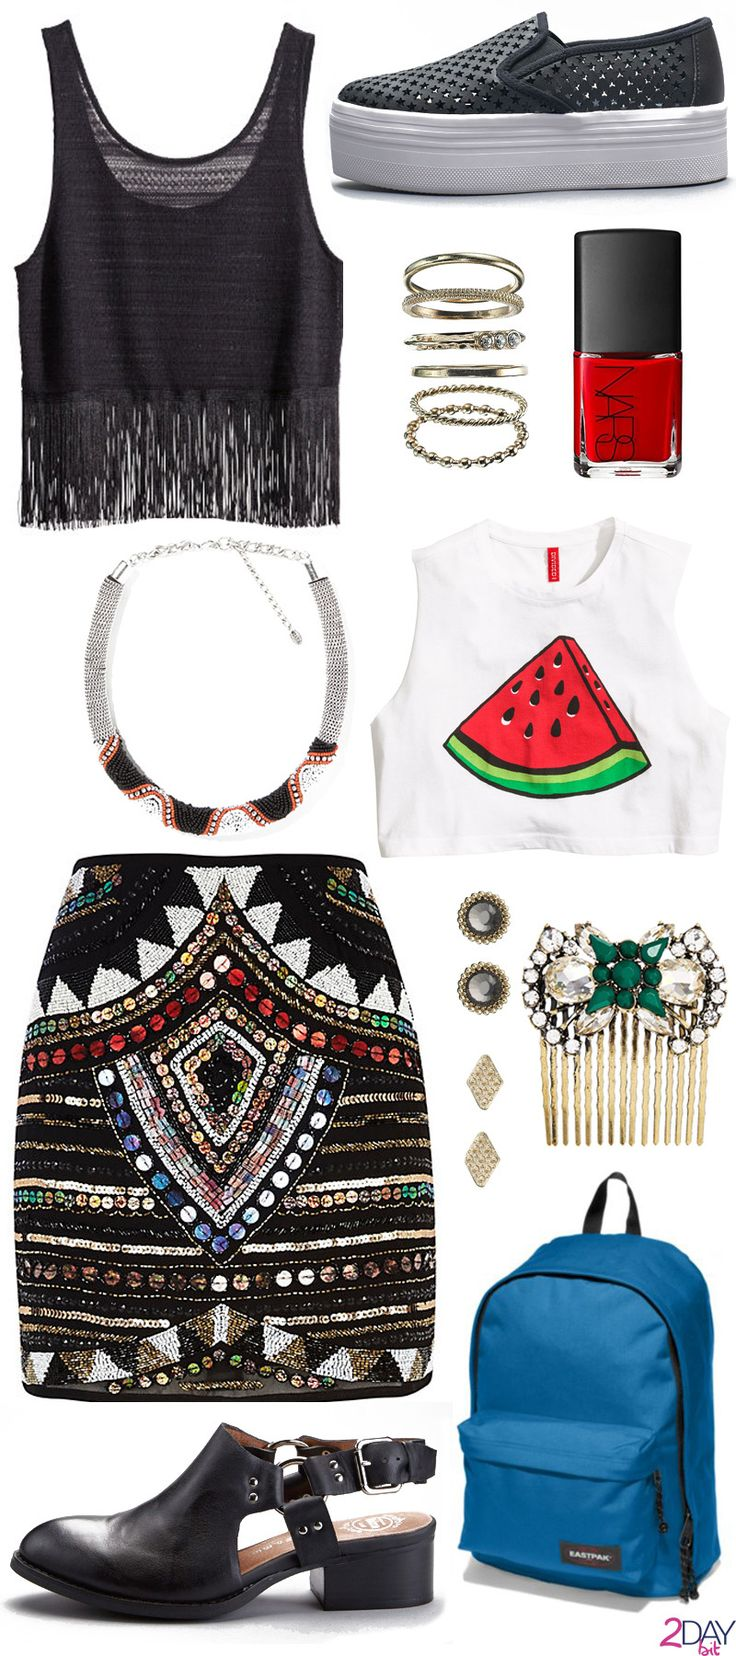 2DayBit   Credits: River Island – Black Embellished Mini Skirt H&M White Top or H&M Black Top Zara Necklace Accessorize Earrings Accesorize Rings Set Nars Cosmetics Nail Polish – Dovima Eastpak – Out Of Office Bluedale Jeffrey Campbell Flats Borel or Sneaker WTF Johnny Loves Rosie Saoirse Hair Slide